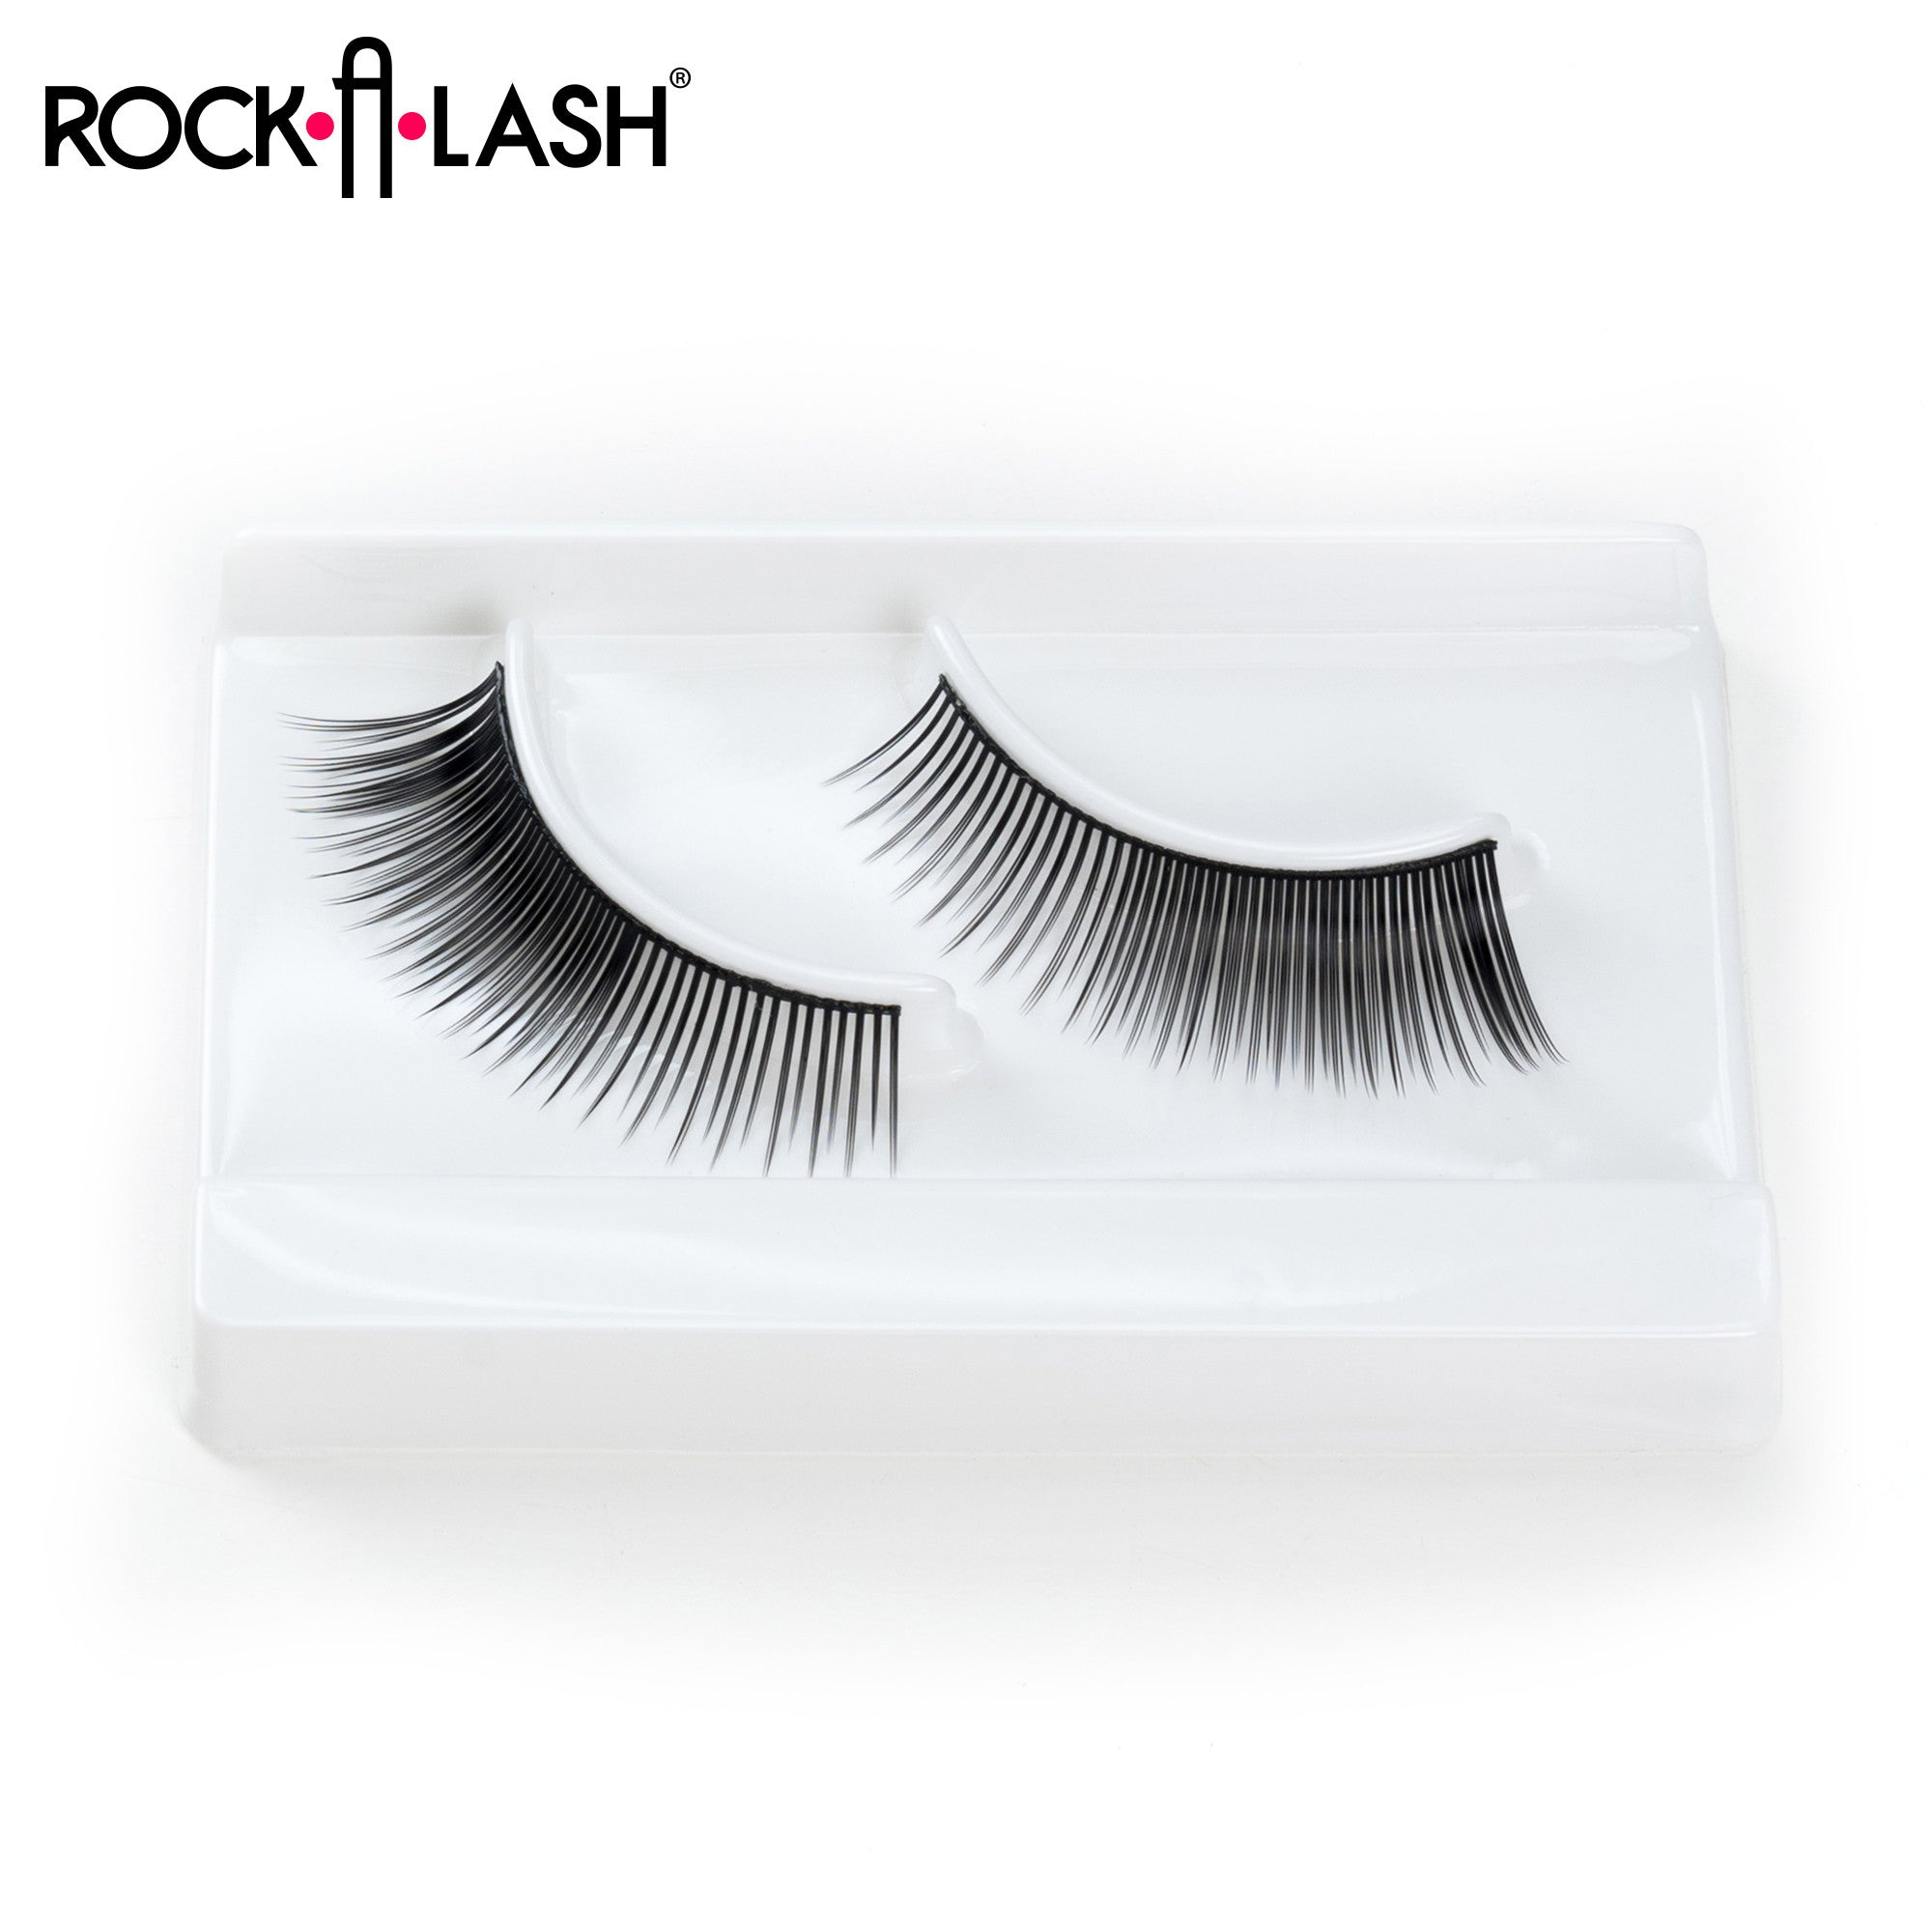 Rock-A-Lash ® <br> #11 London - 1 Pair